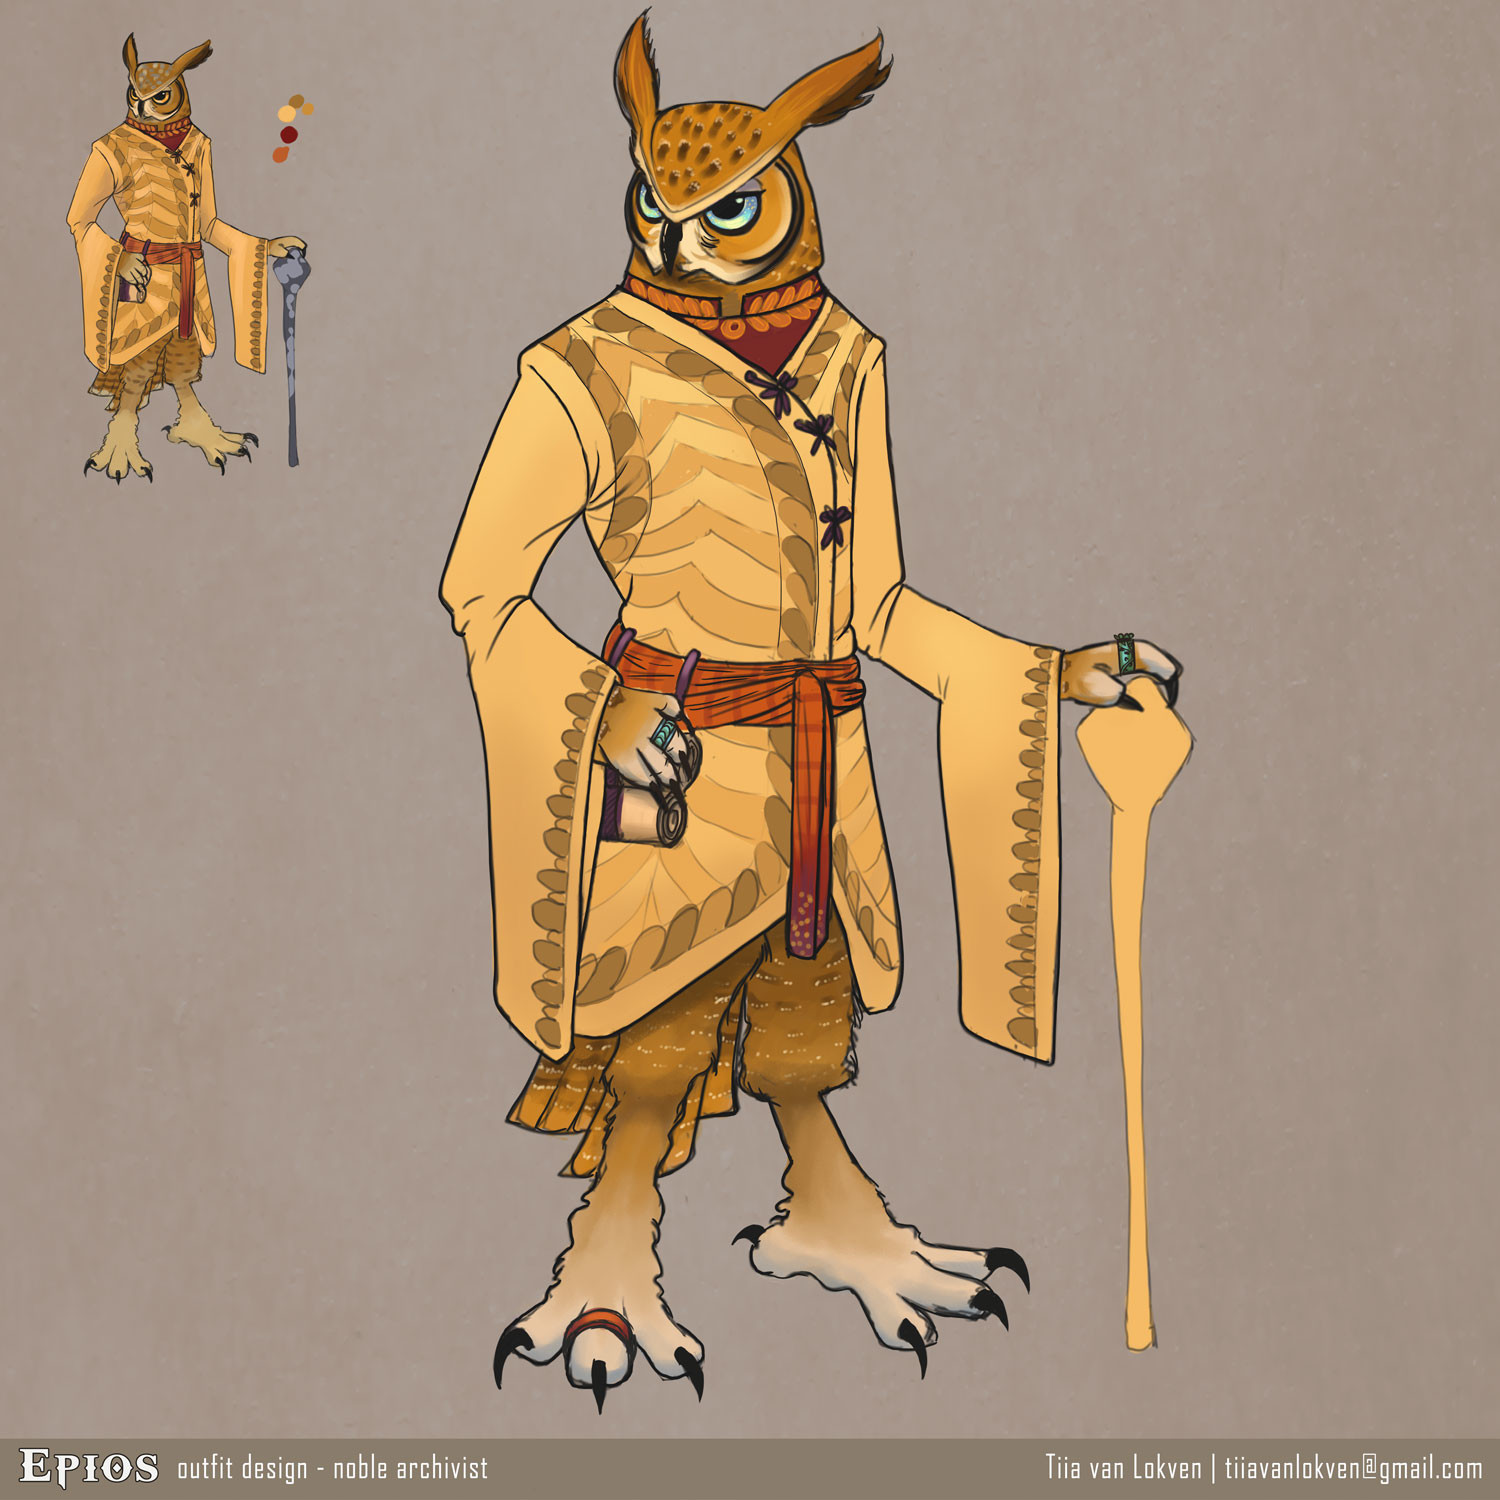 Epios outfit design: court archivist